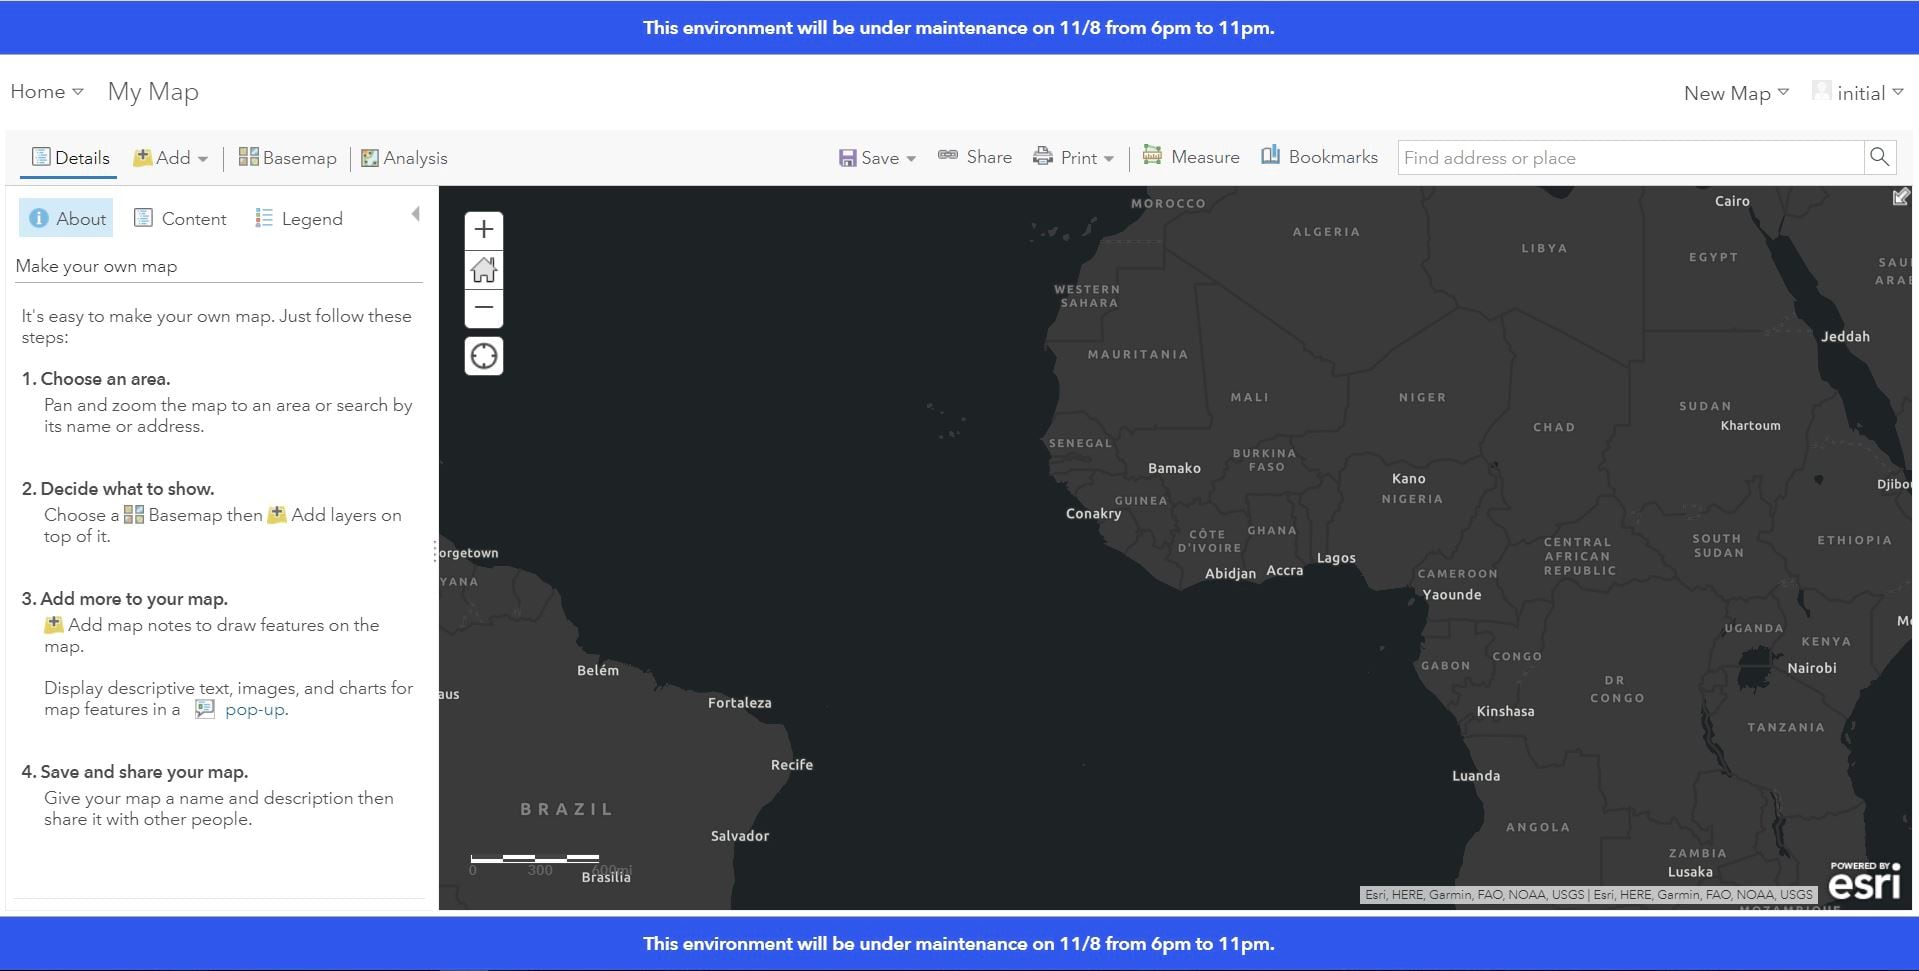 A map in ArcGIS Enterprise with an information banner signaling that the environment will be under maintenance.